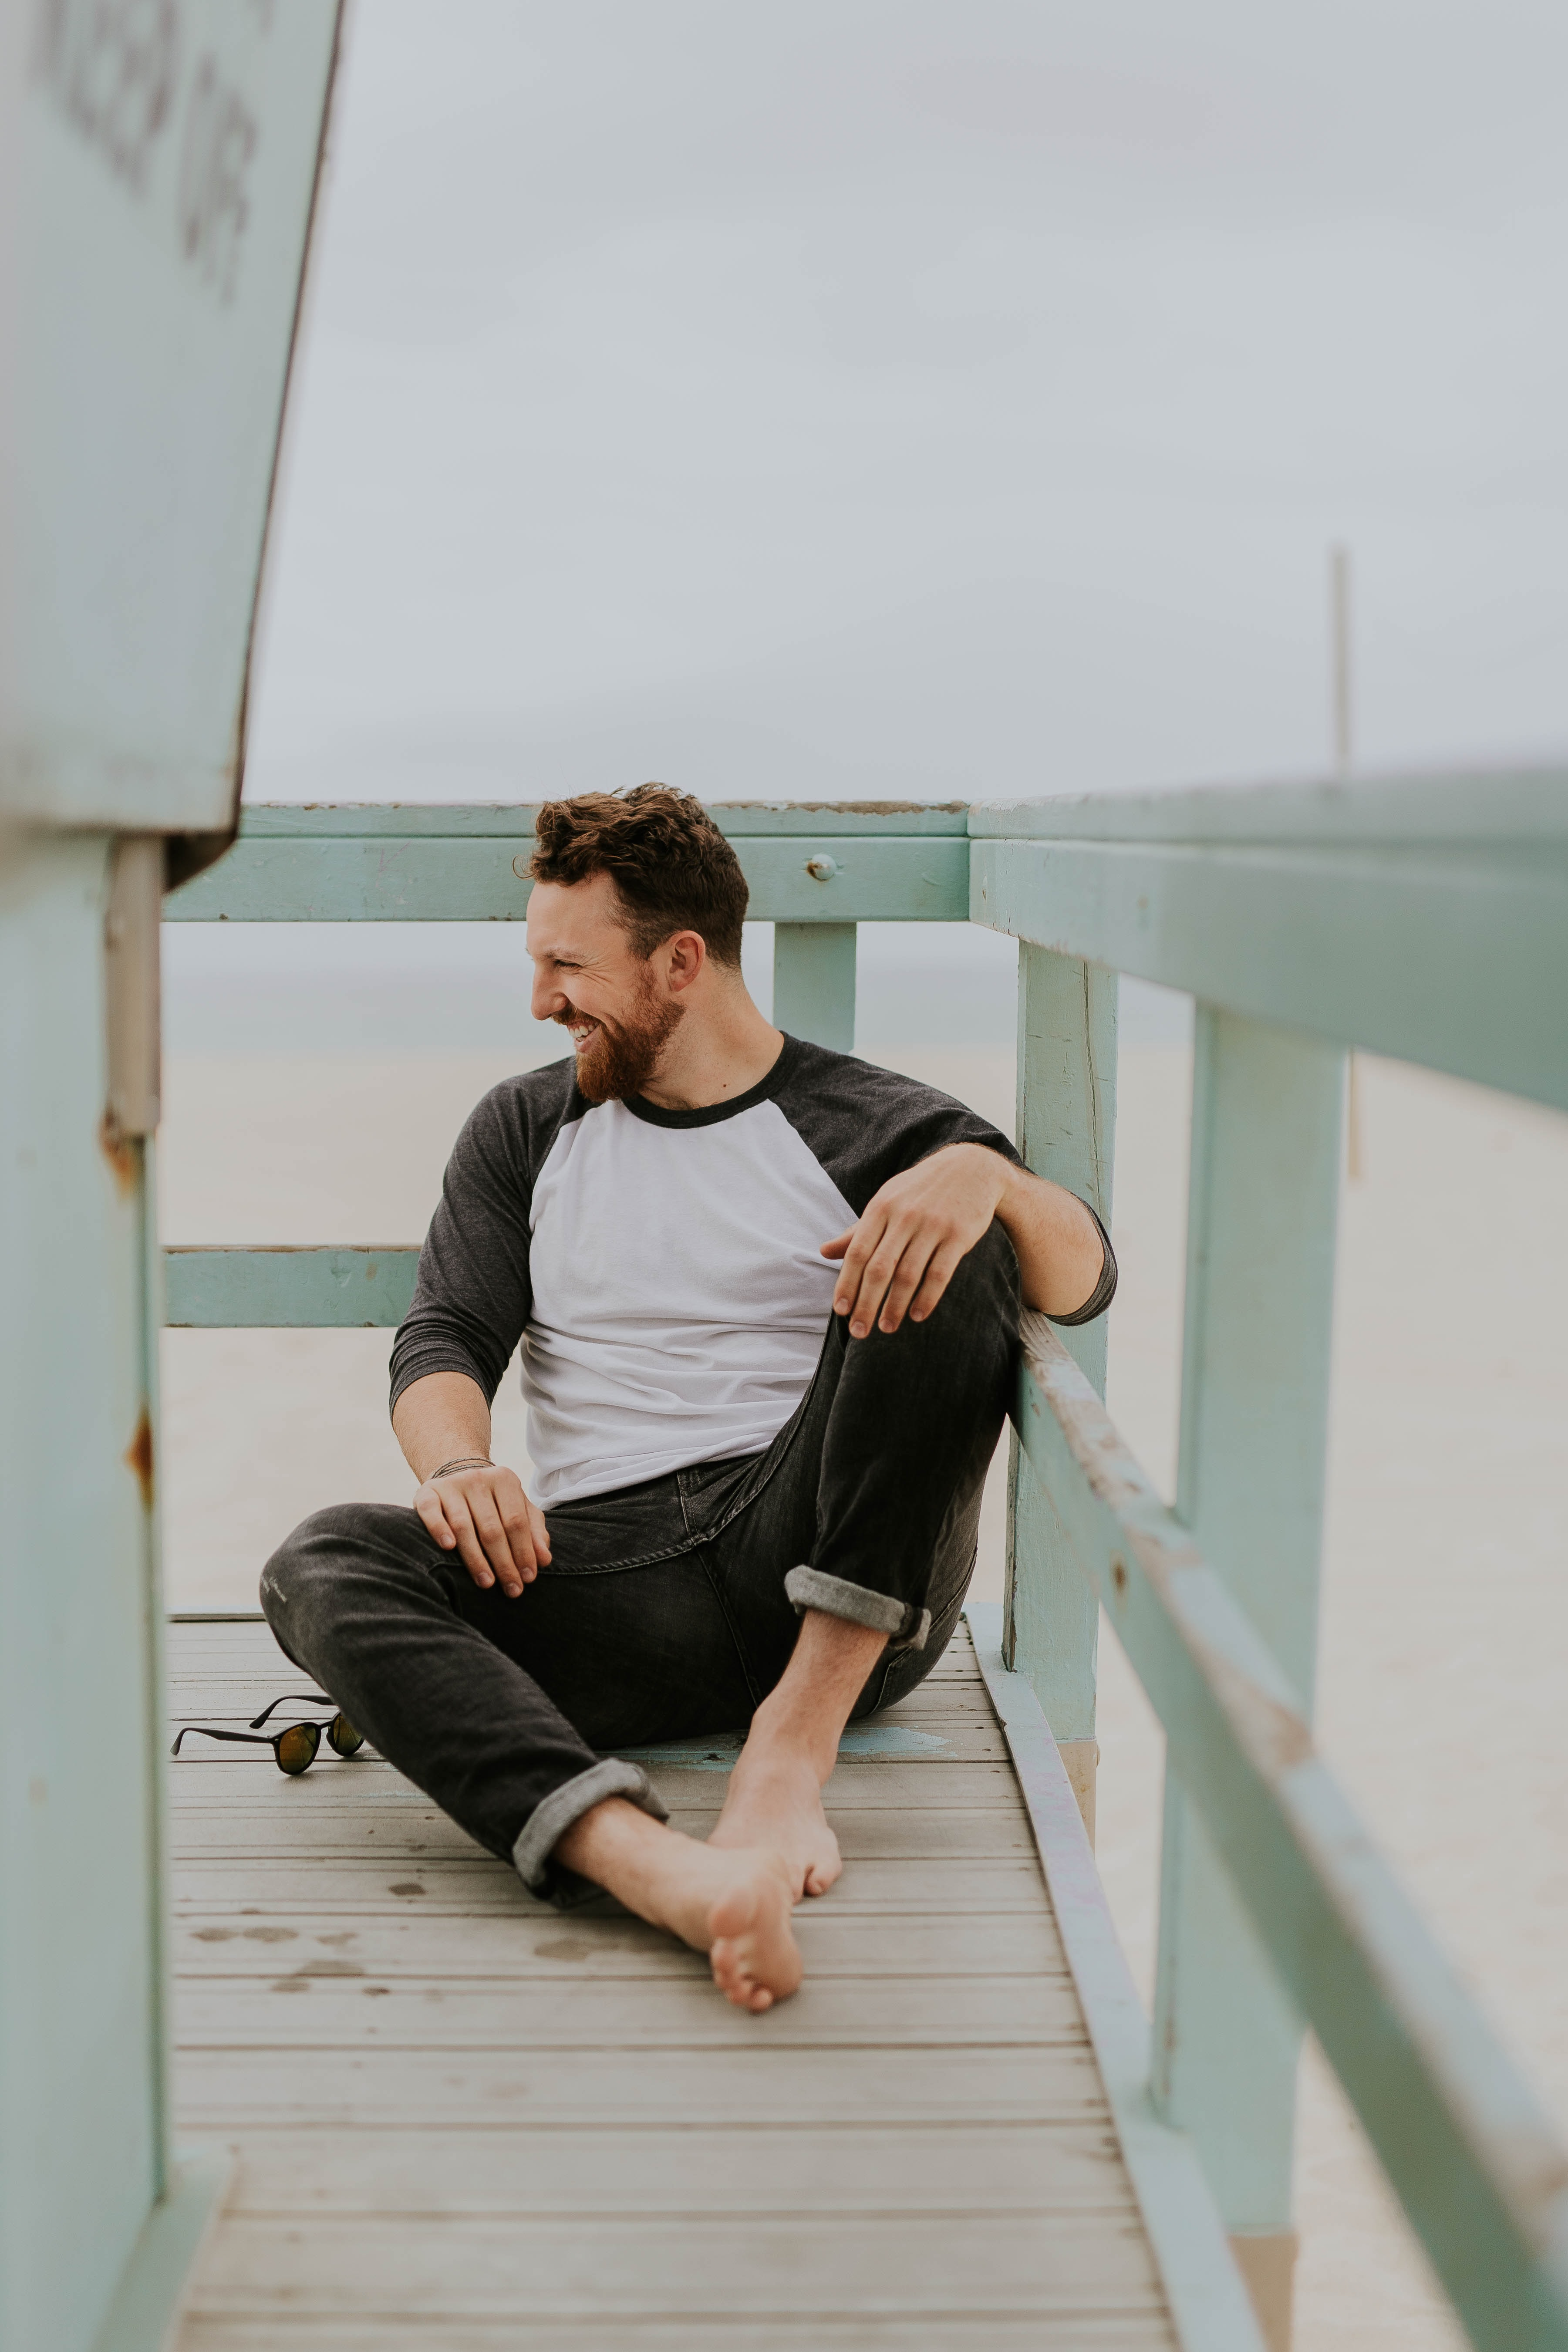 man smiling while sitting on floor during daytime